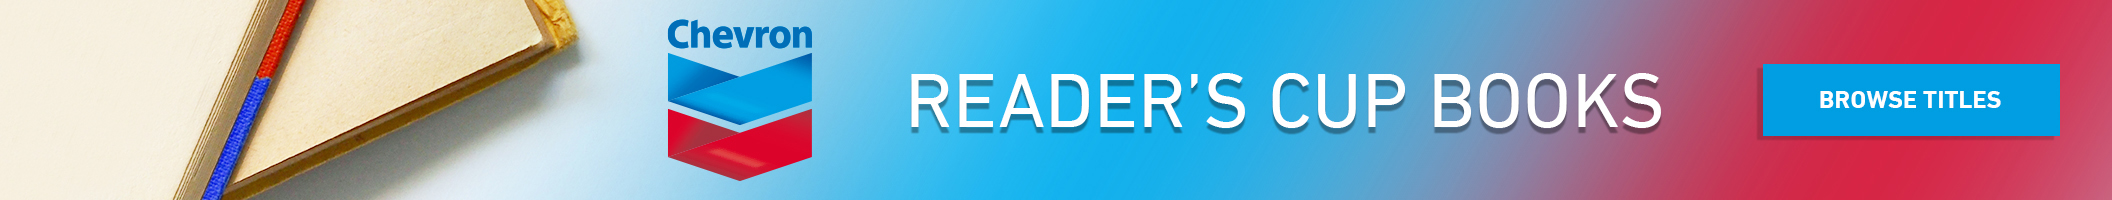 Chevron Readers Cup Homepage banner 2112x200